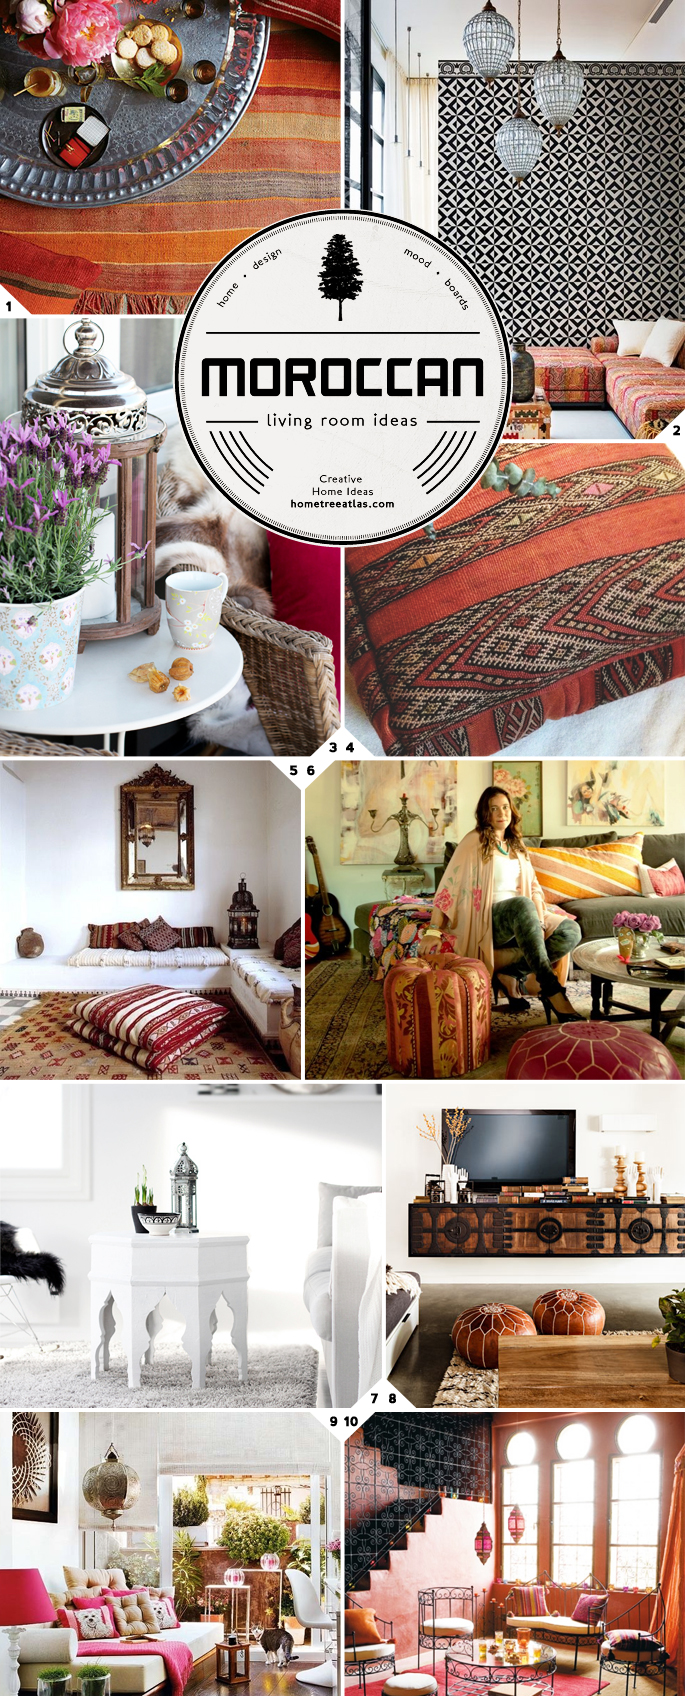 Moroccan Living Room Ideas